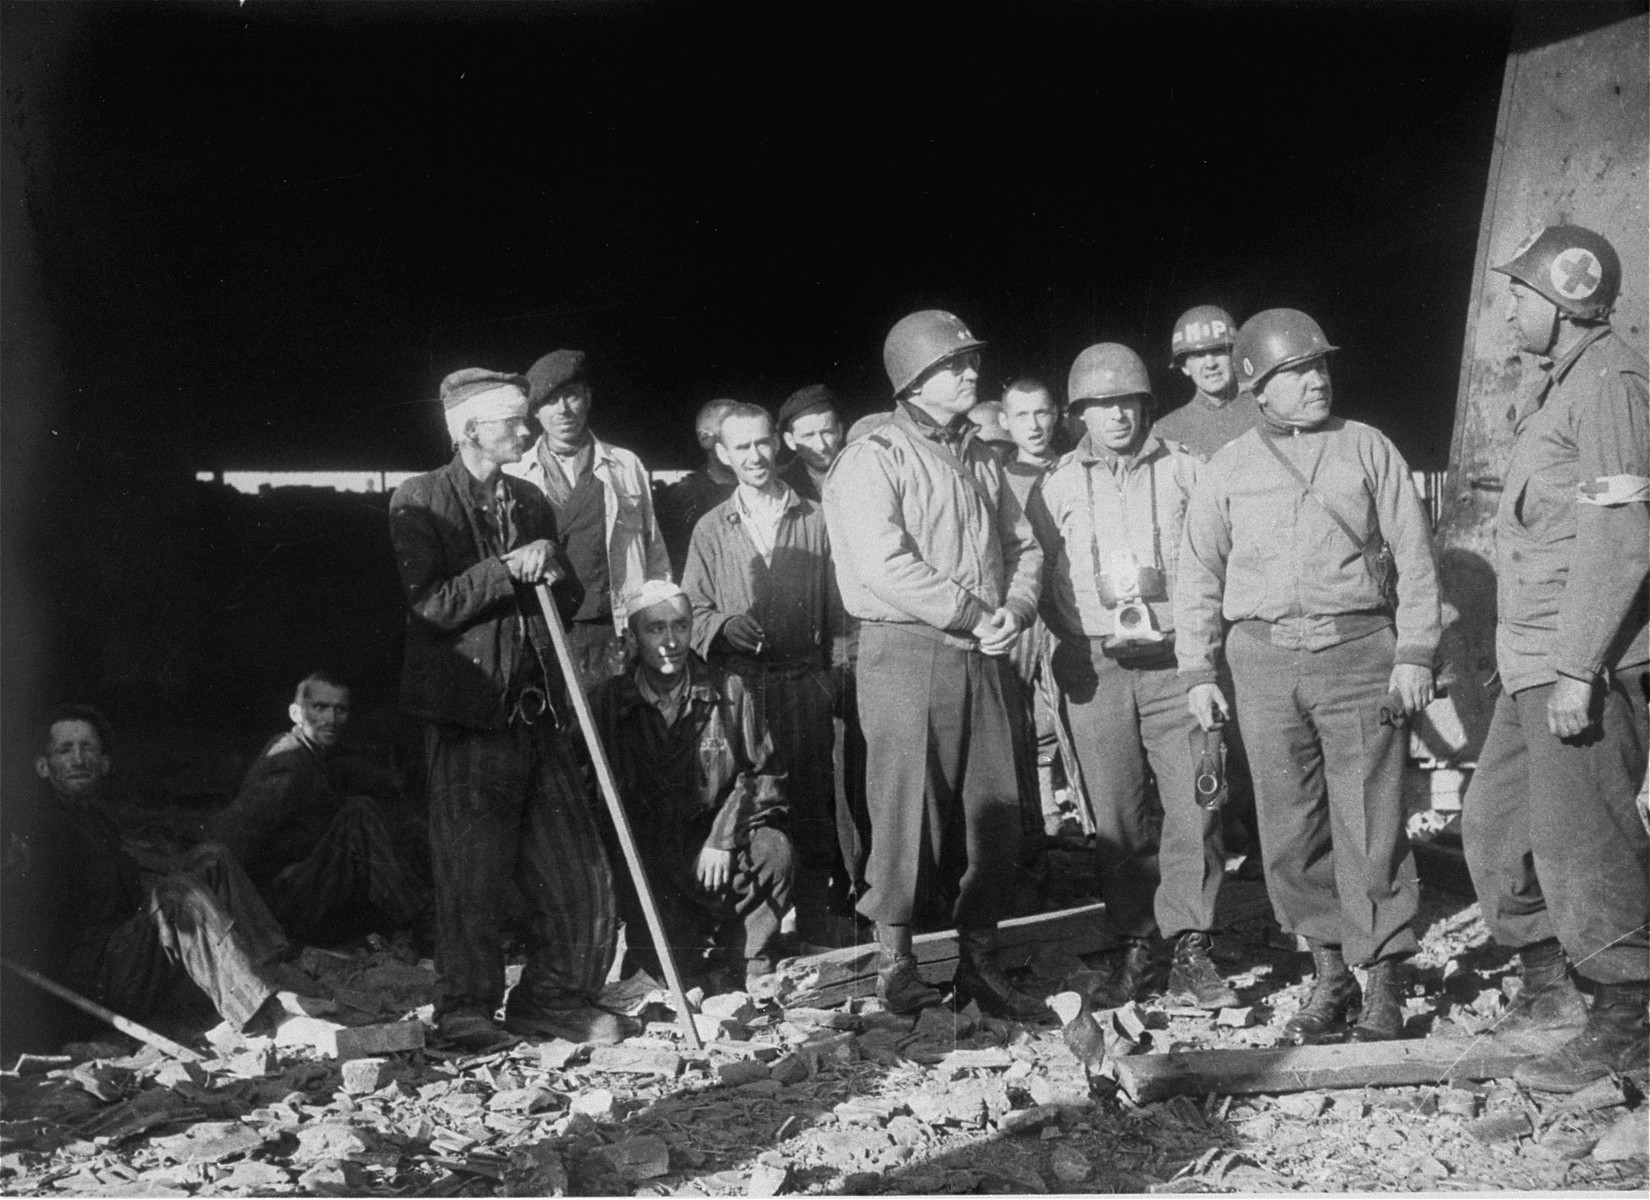 American officers speak with a medical officer while on an inspection of the ruins of the Boelke Kaserne in the Nordhausen concentration camp.    The man speaking with the corpsman is Major General J. Lawton Collins.  To his right are Brigadier General Truman E. Boudinot and Brigadier General Doyle O. Hickey.